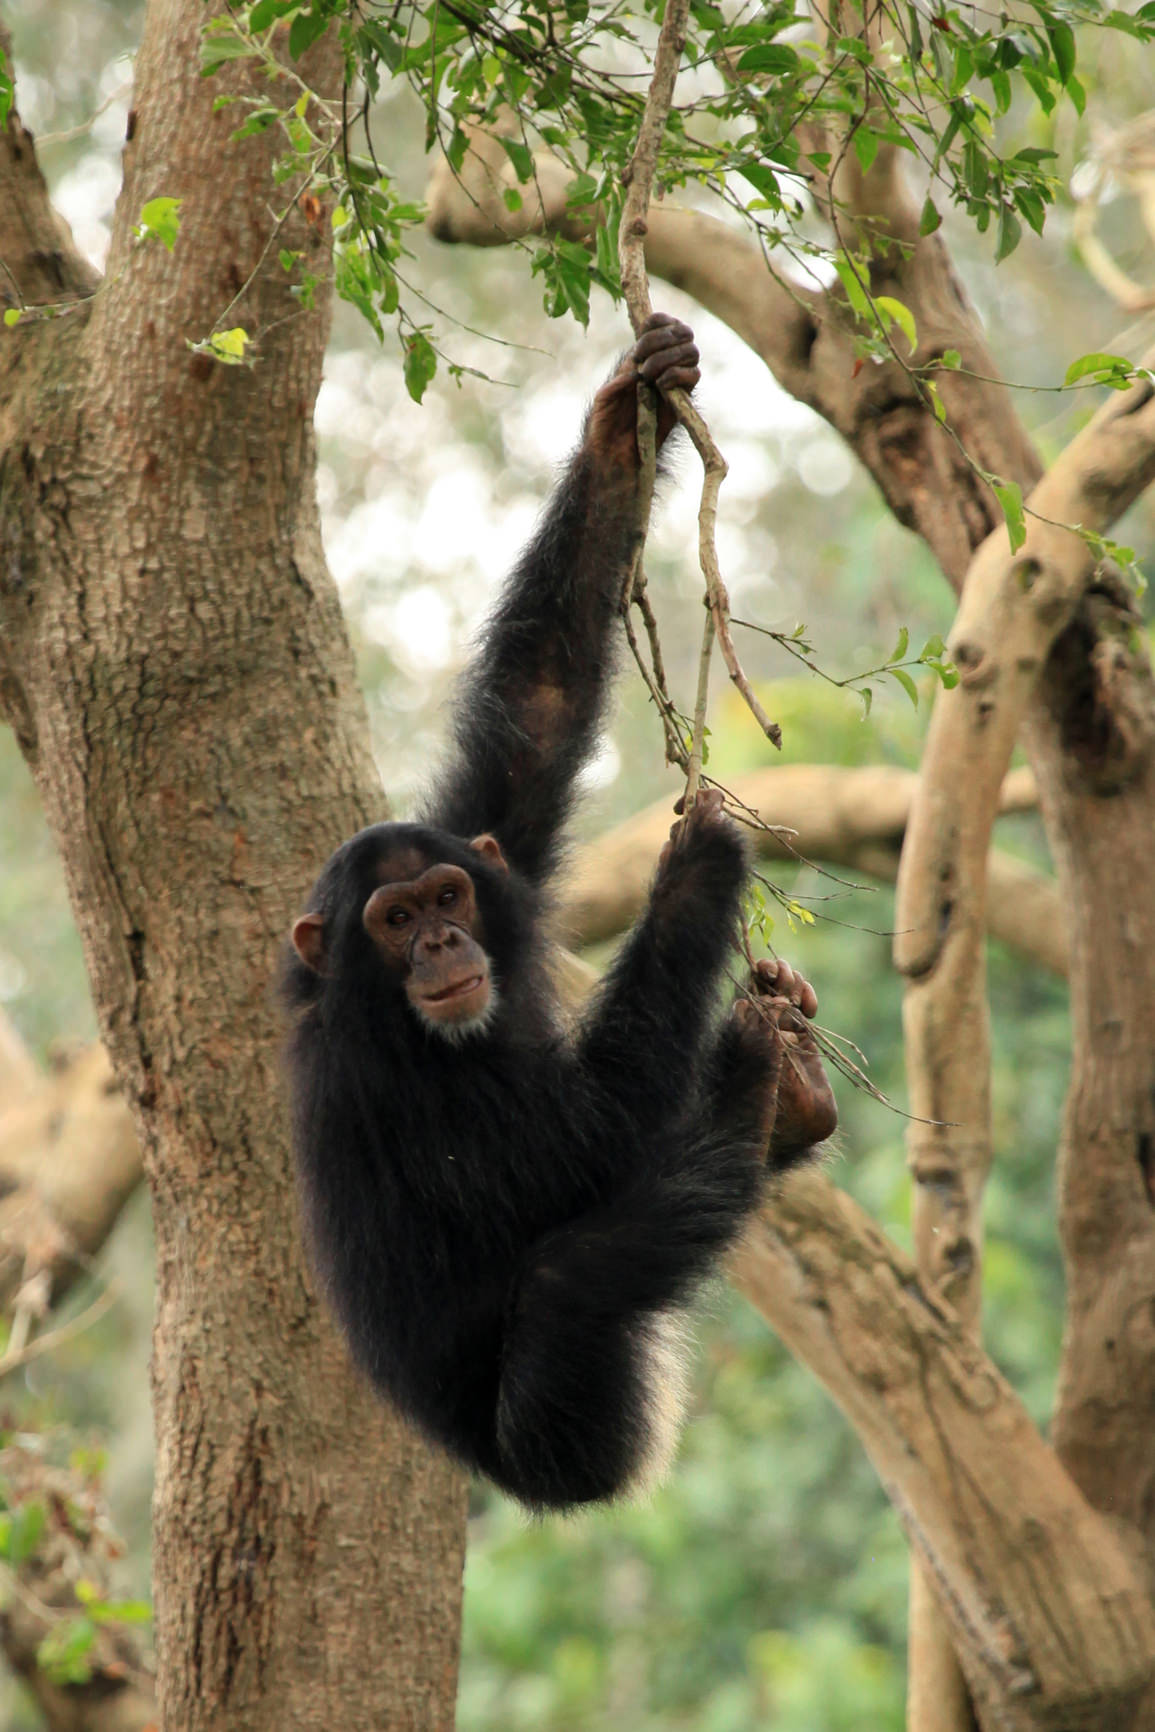 Infant chimpanzee in Uganda